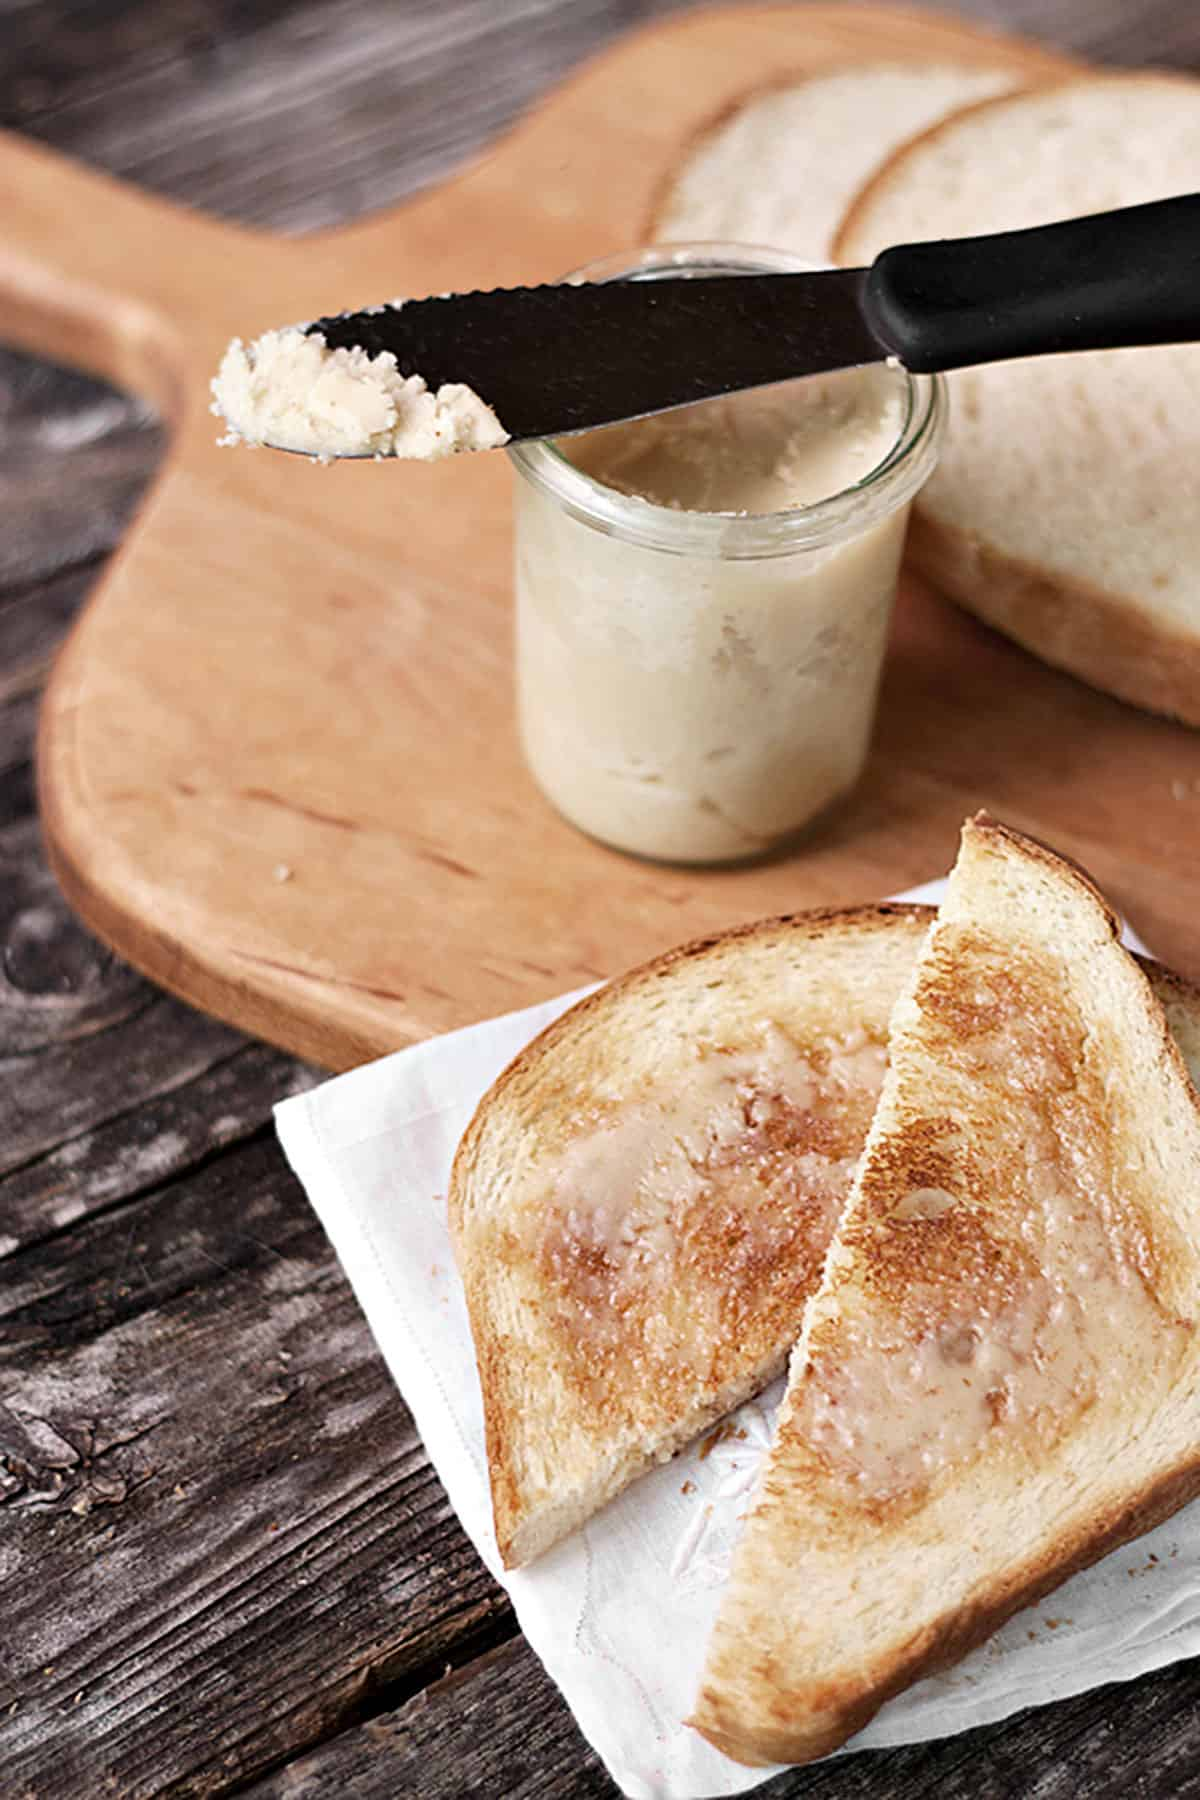 maple butter and bread on cutting board with toast